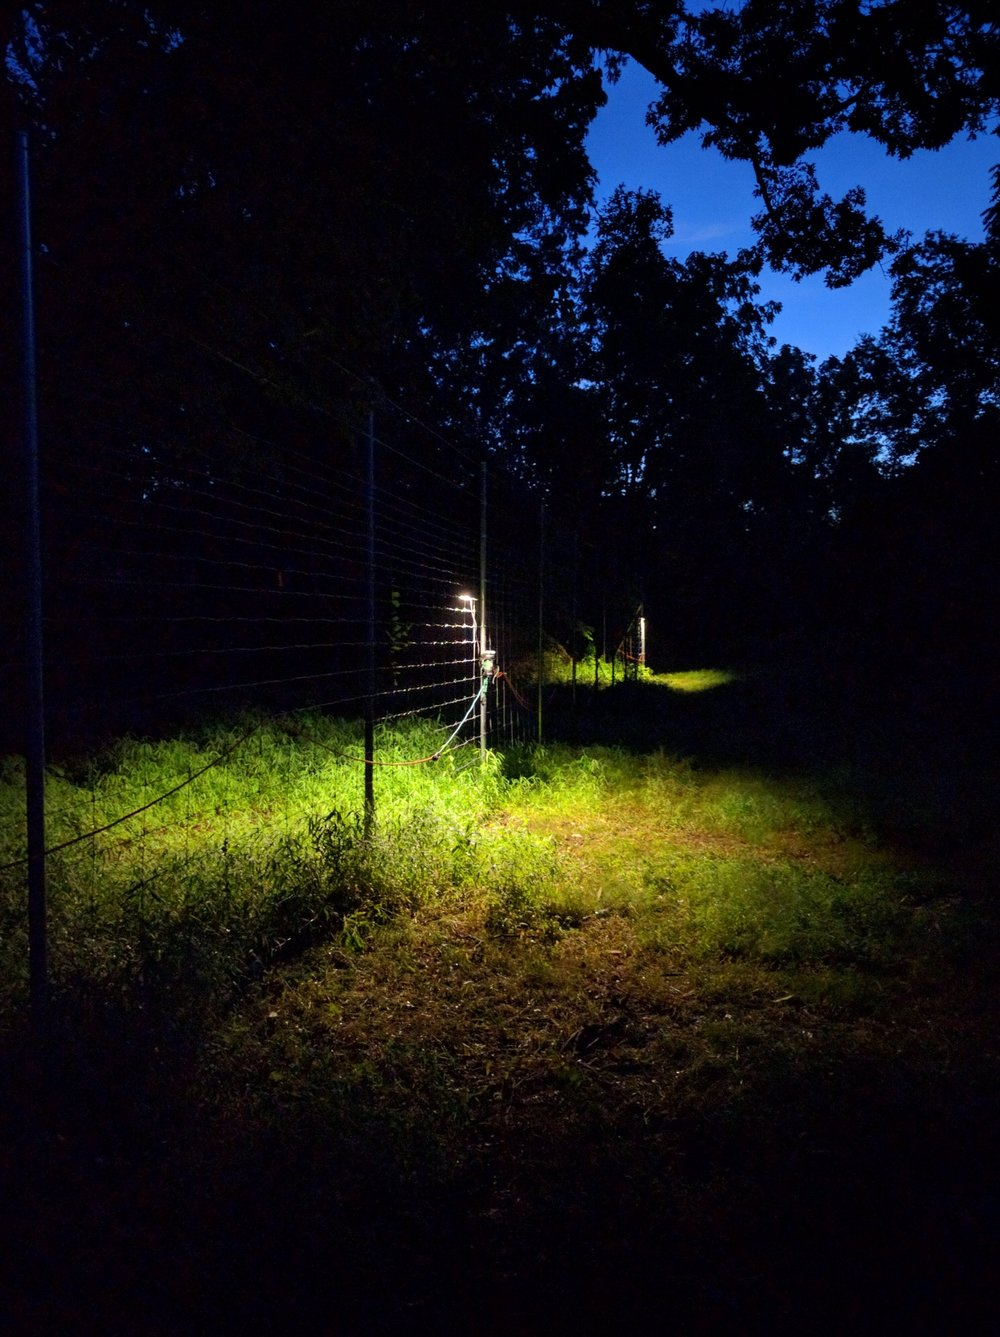 A look at two of my light sources for my investigation on the impact of light pollution. Underneath the lights are transects of pitfall traps.